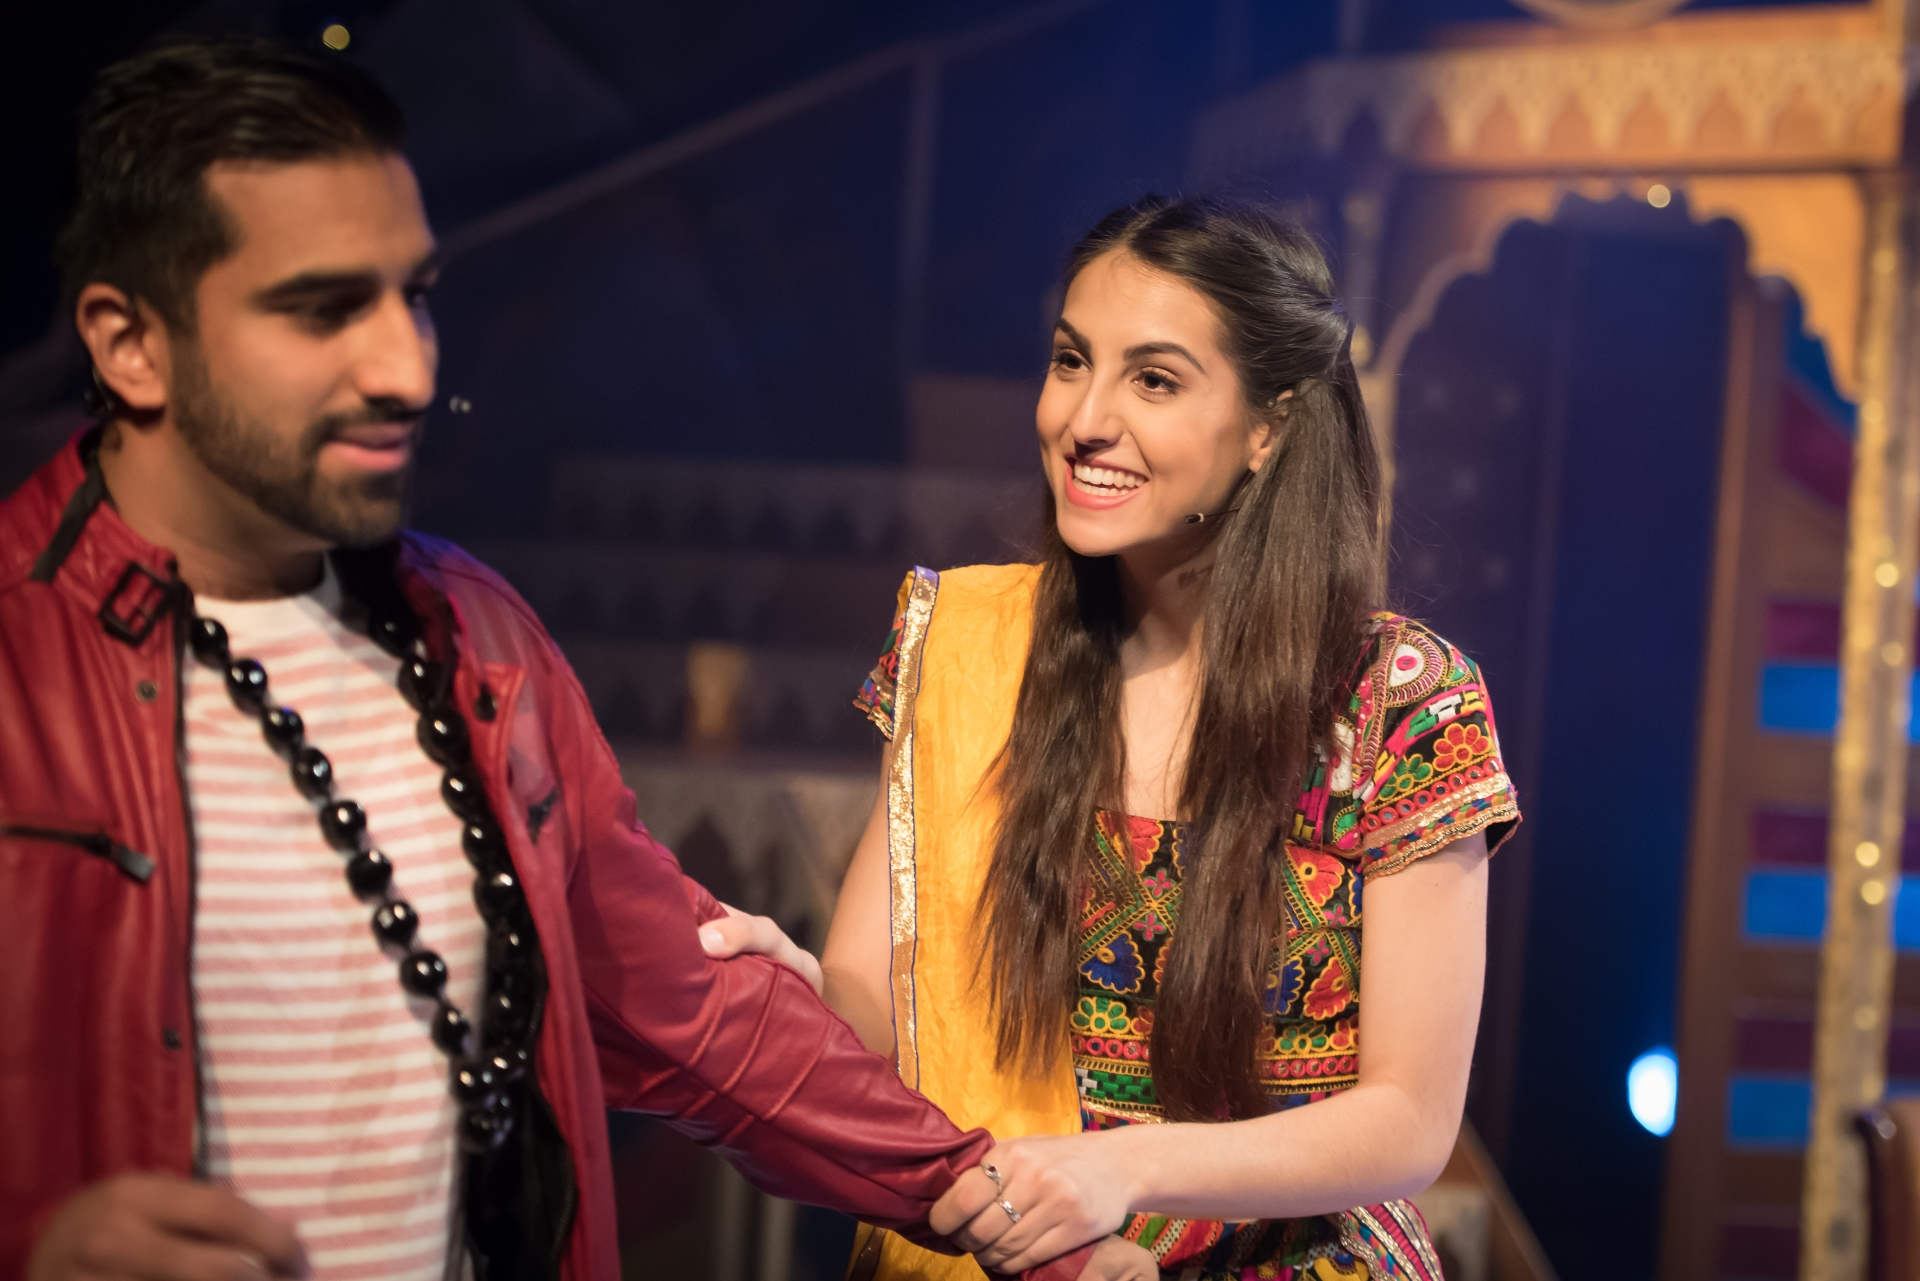 Sophie Kandola as Rehka and Yanick Ghanty as Amit Kapoor - Credit Nicola Young.jpg